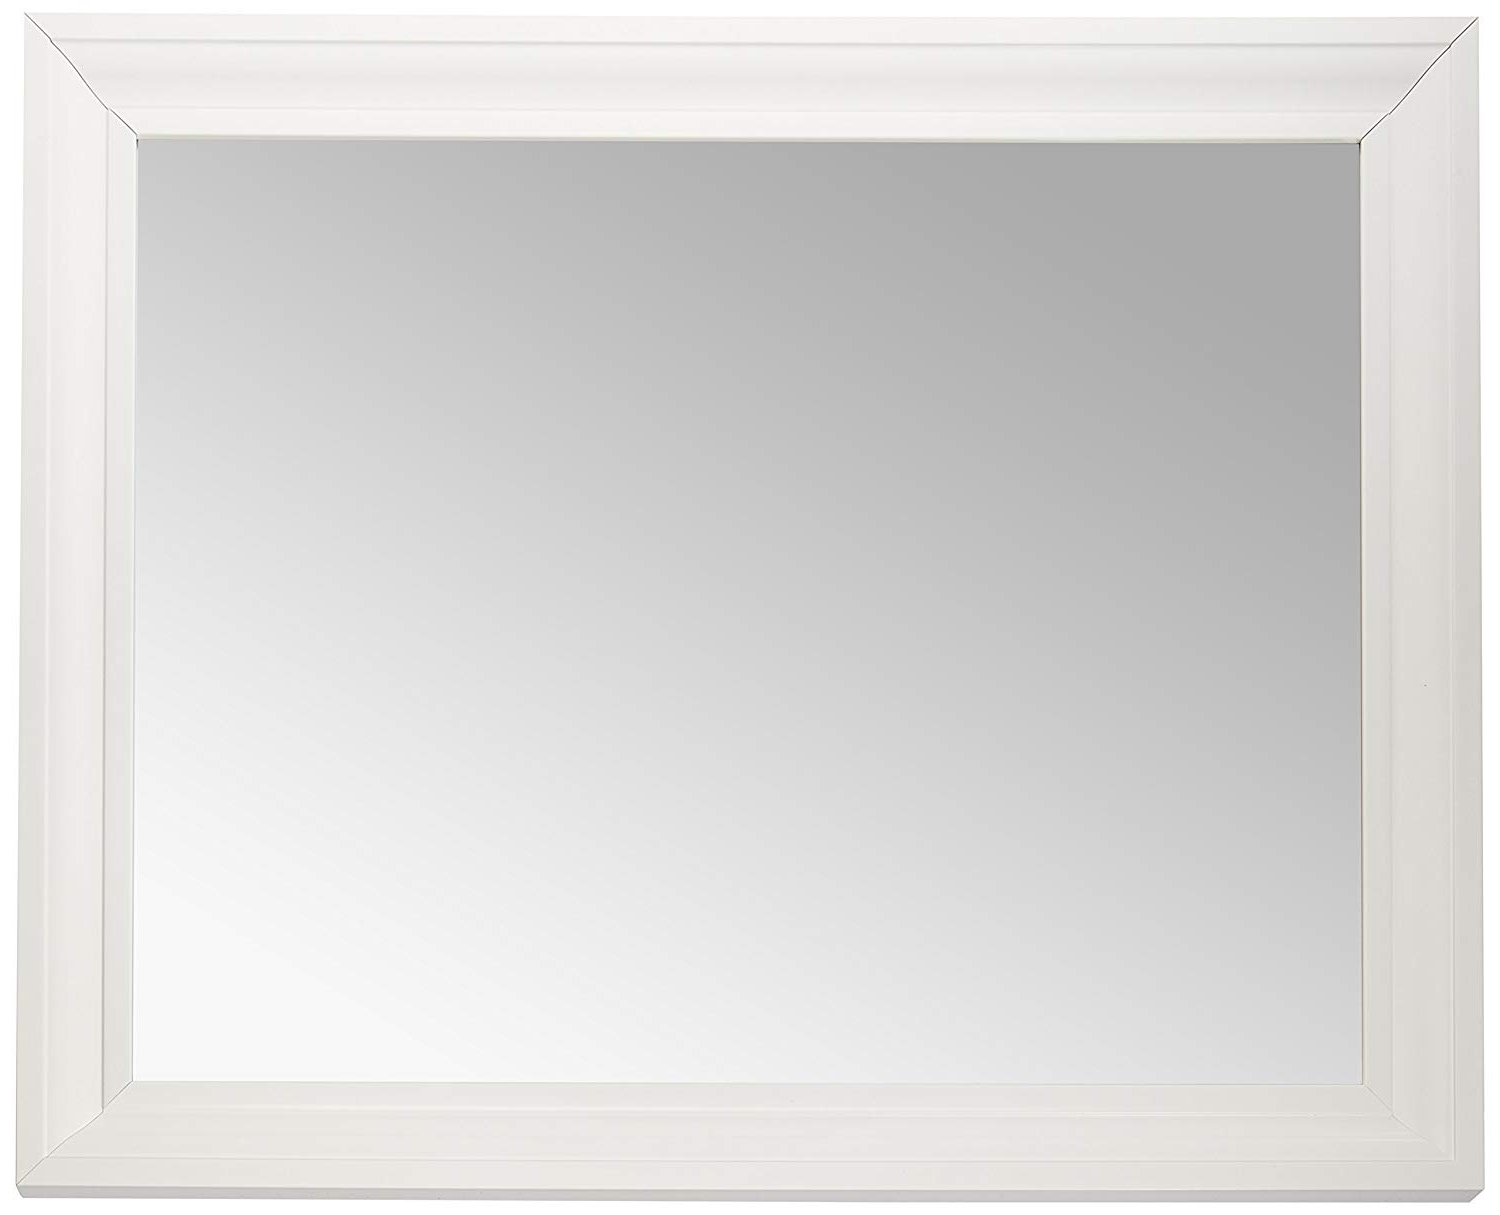 Mcs 21.5x27.5 Inch Rectangular Wall Mirror, 26.5x (View 6 of 20)